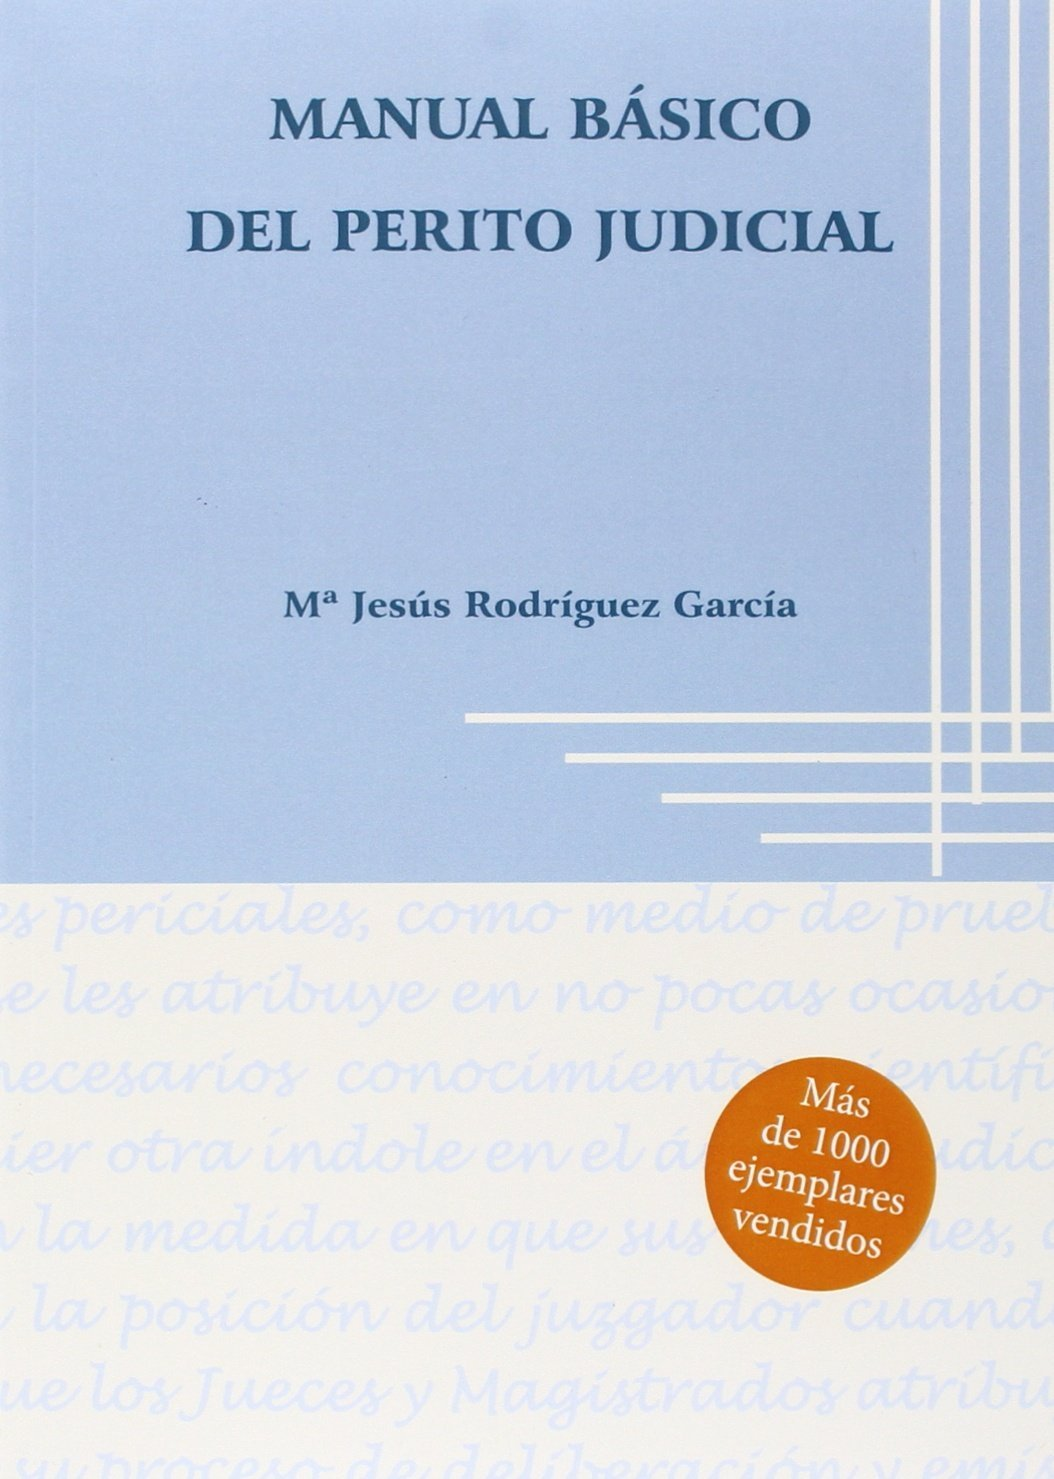 Buy Manual basico del perito judicial / Basic Manual of court expert Book  Online at Low Prices in India | Manual basico del perito judicial / Basic  Manual ...